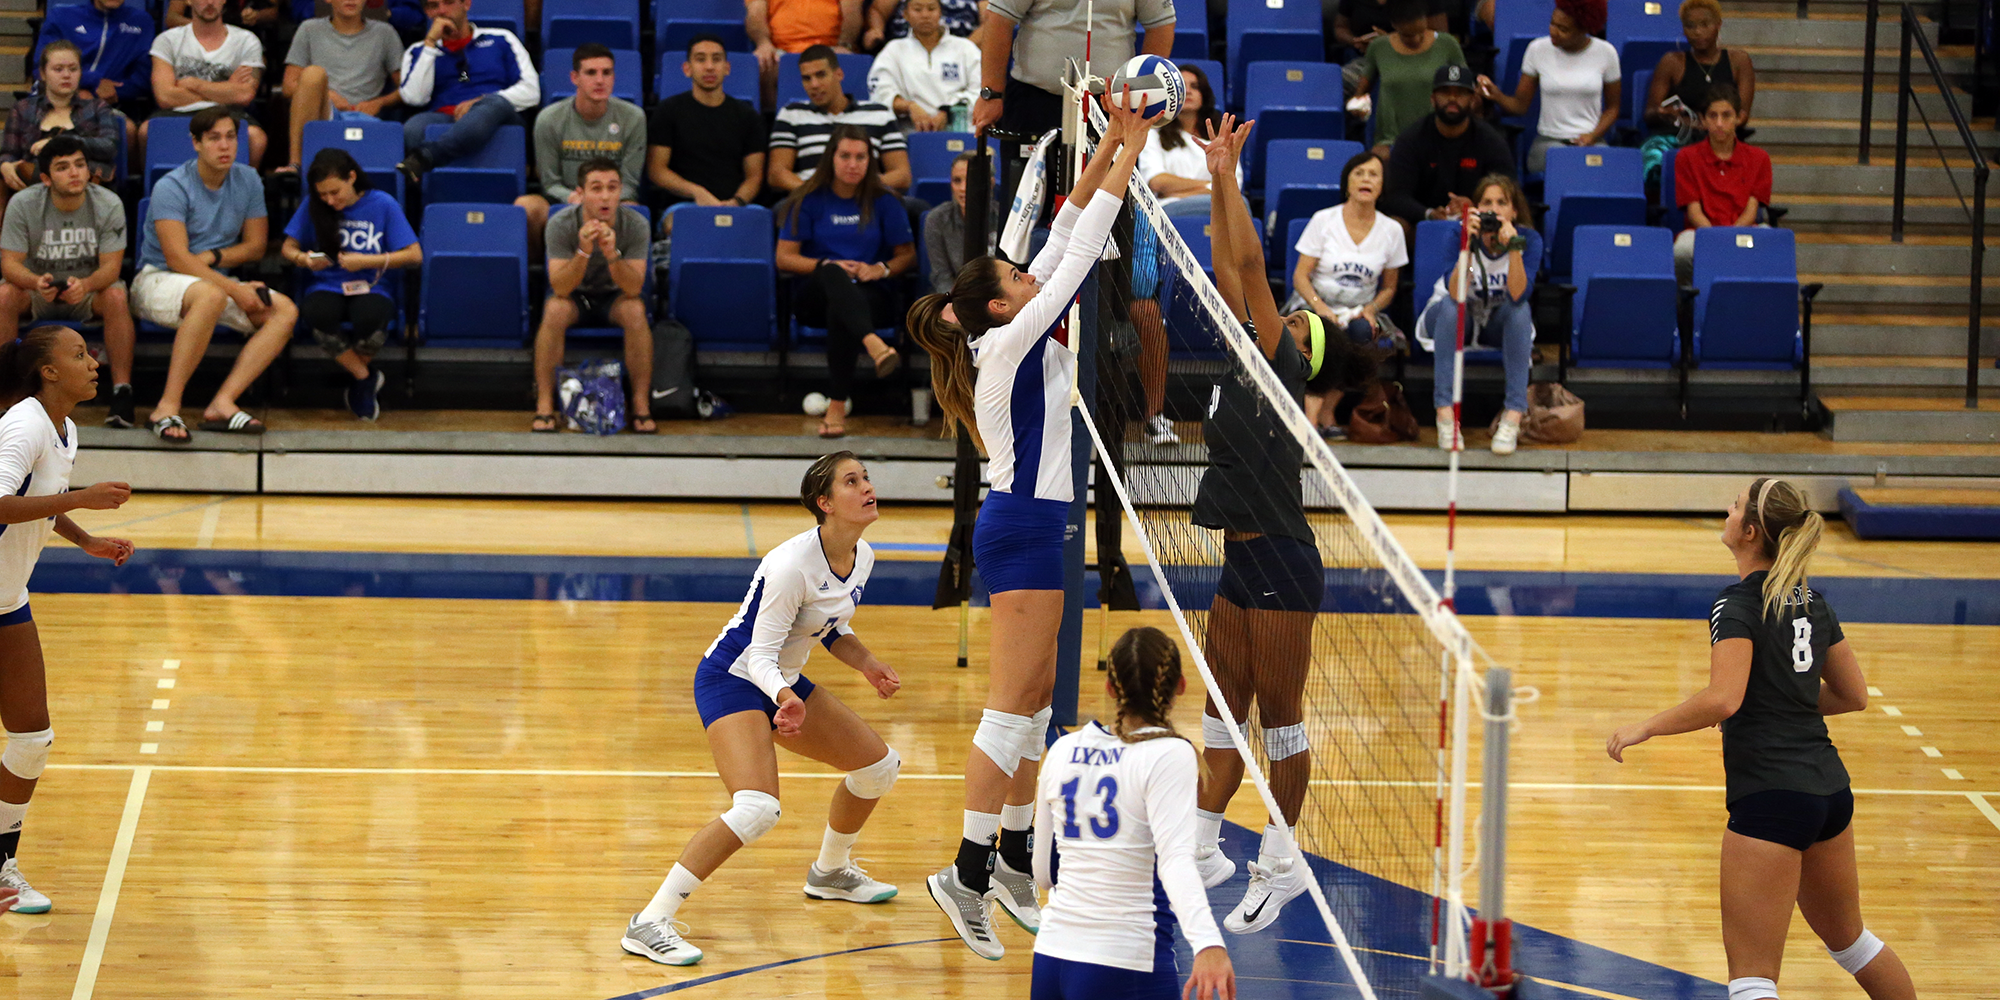 Volleyball Caps Home Stretch with 3-1 Triumph over Embry-Riddle